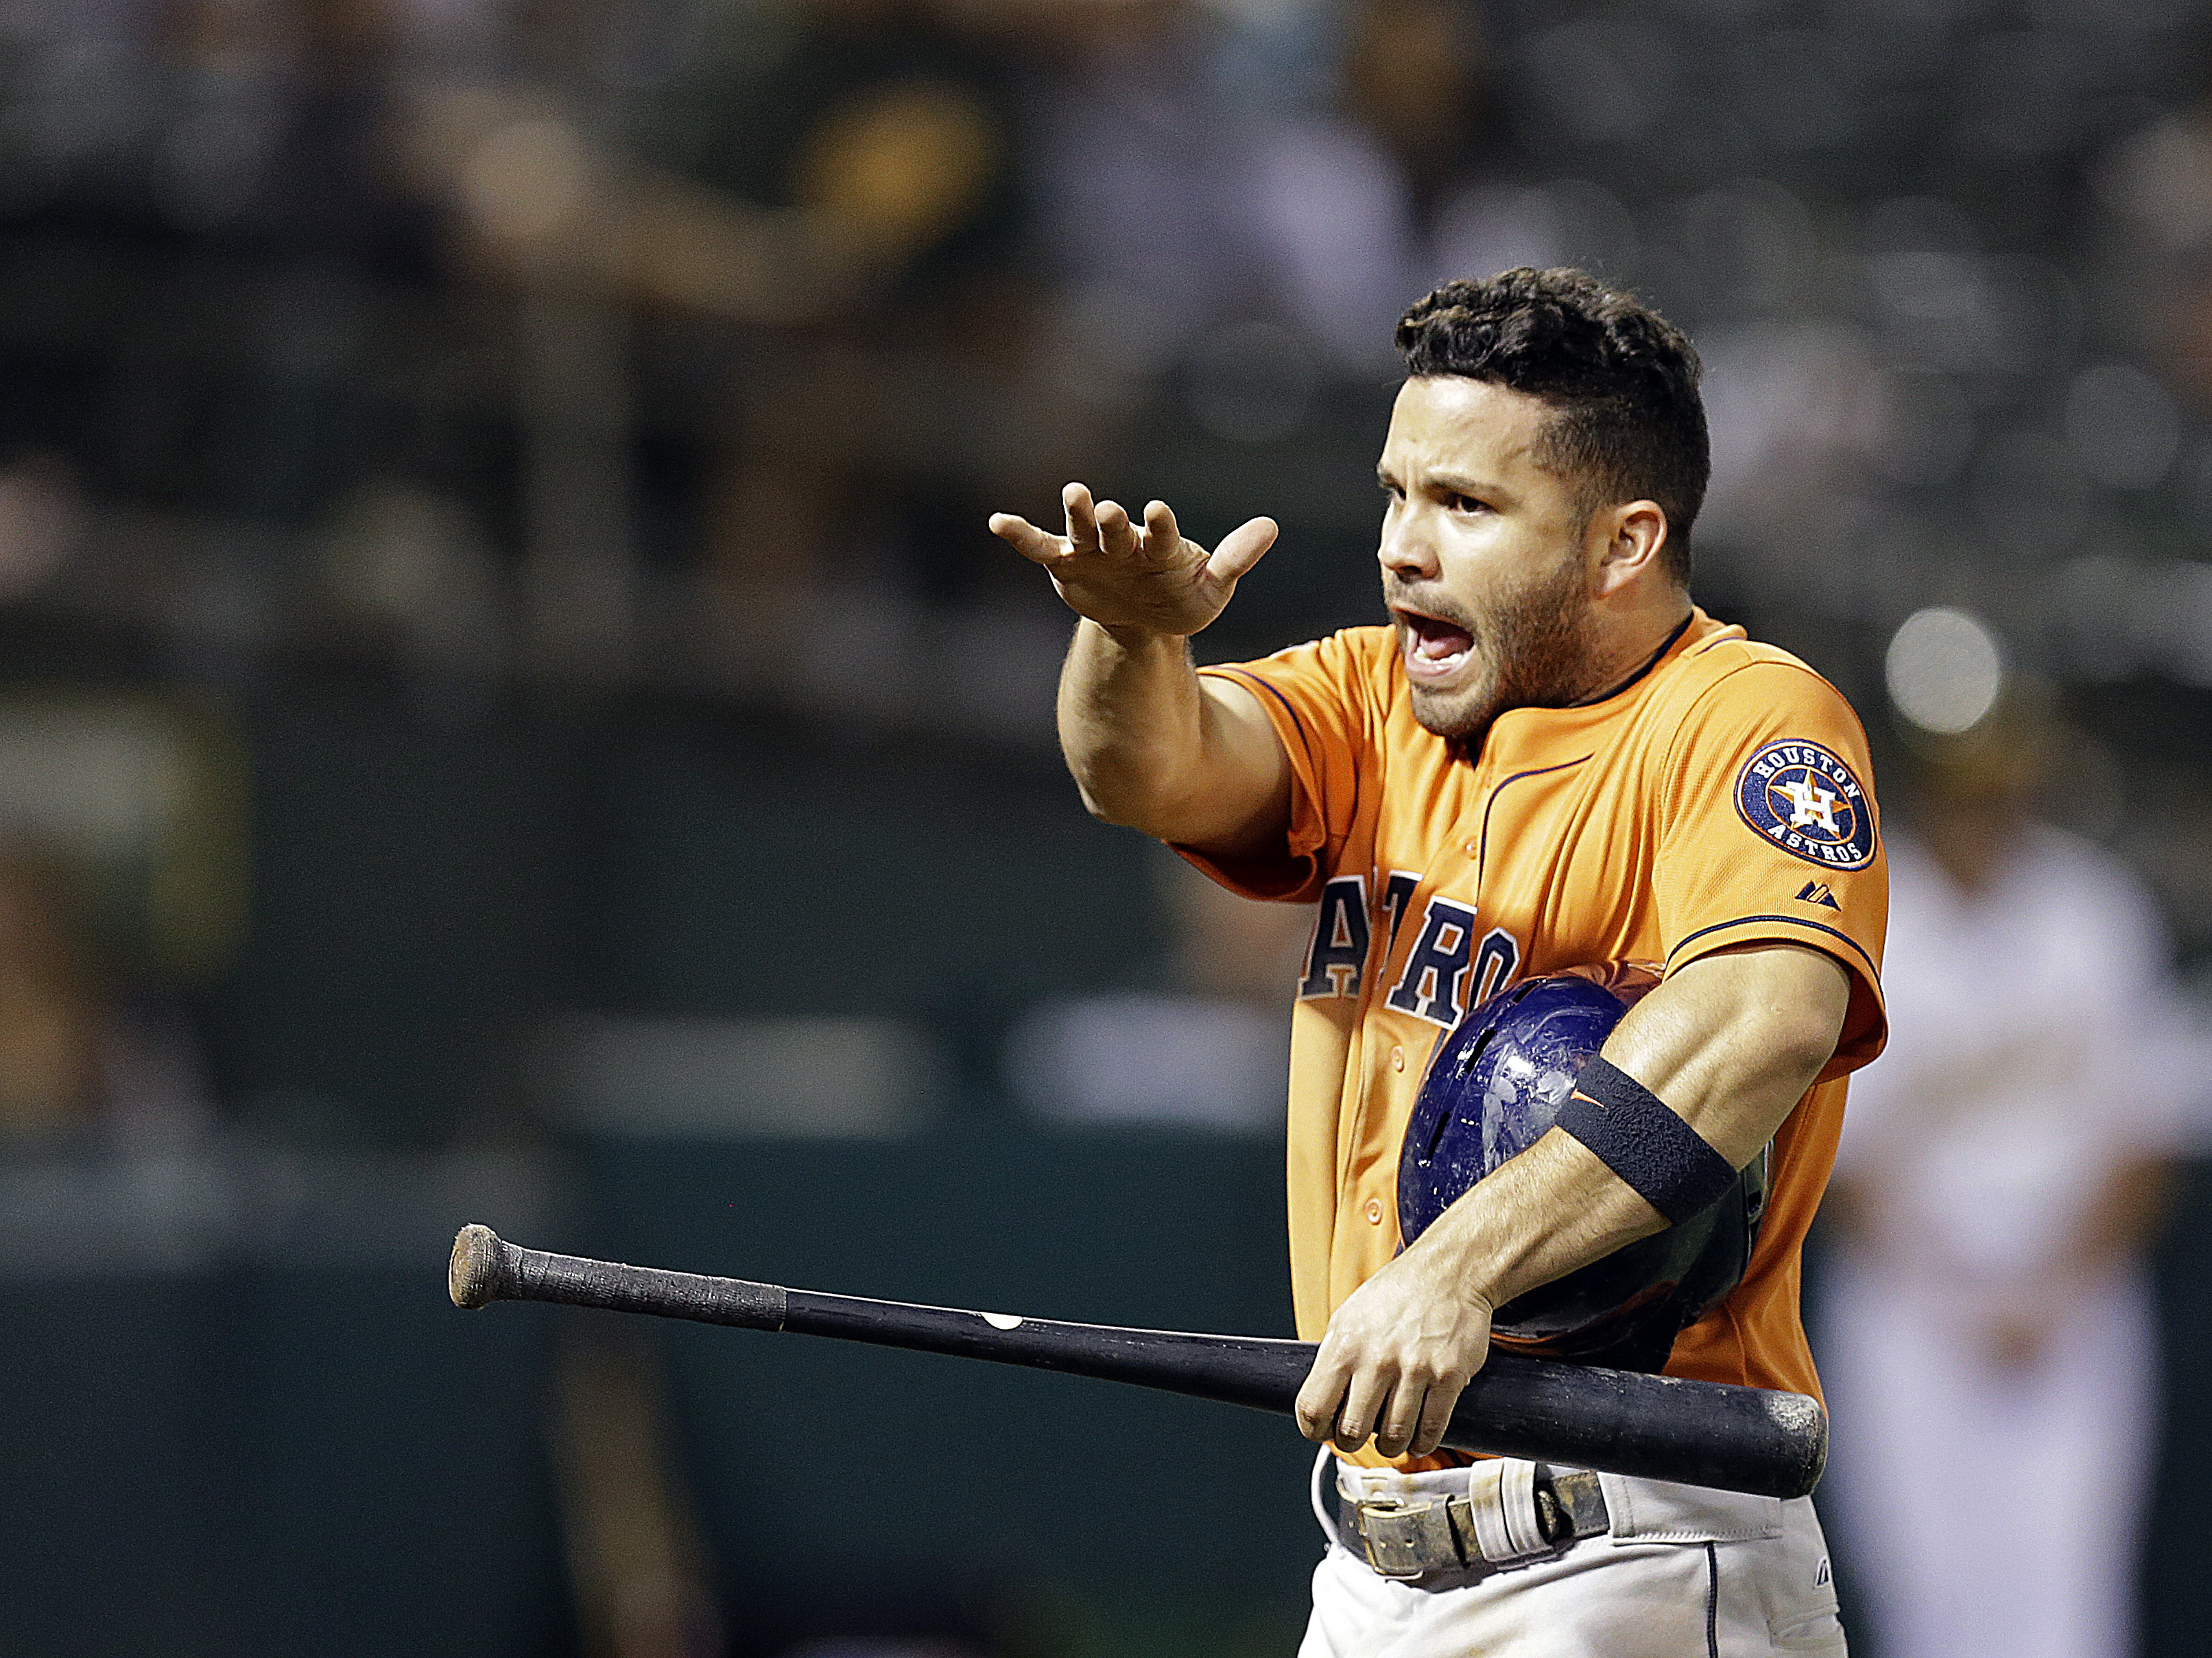 Houston Astros' Jose Altuve celebrates after scoring against the Oakland Athletics in the tenth inning of a baseball game Thursday, Aug. 6, 2015, in Oakland, Calif. (AP Photo/Ben Margot)